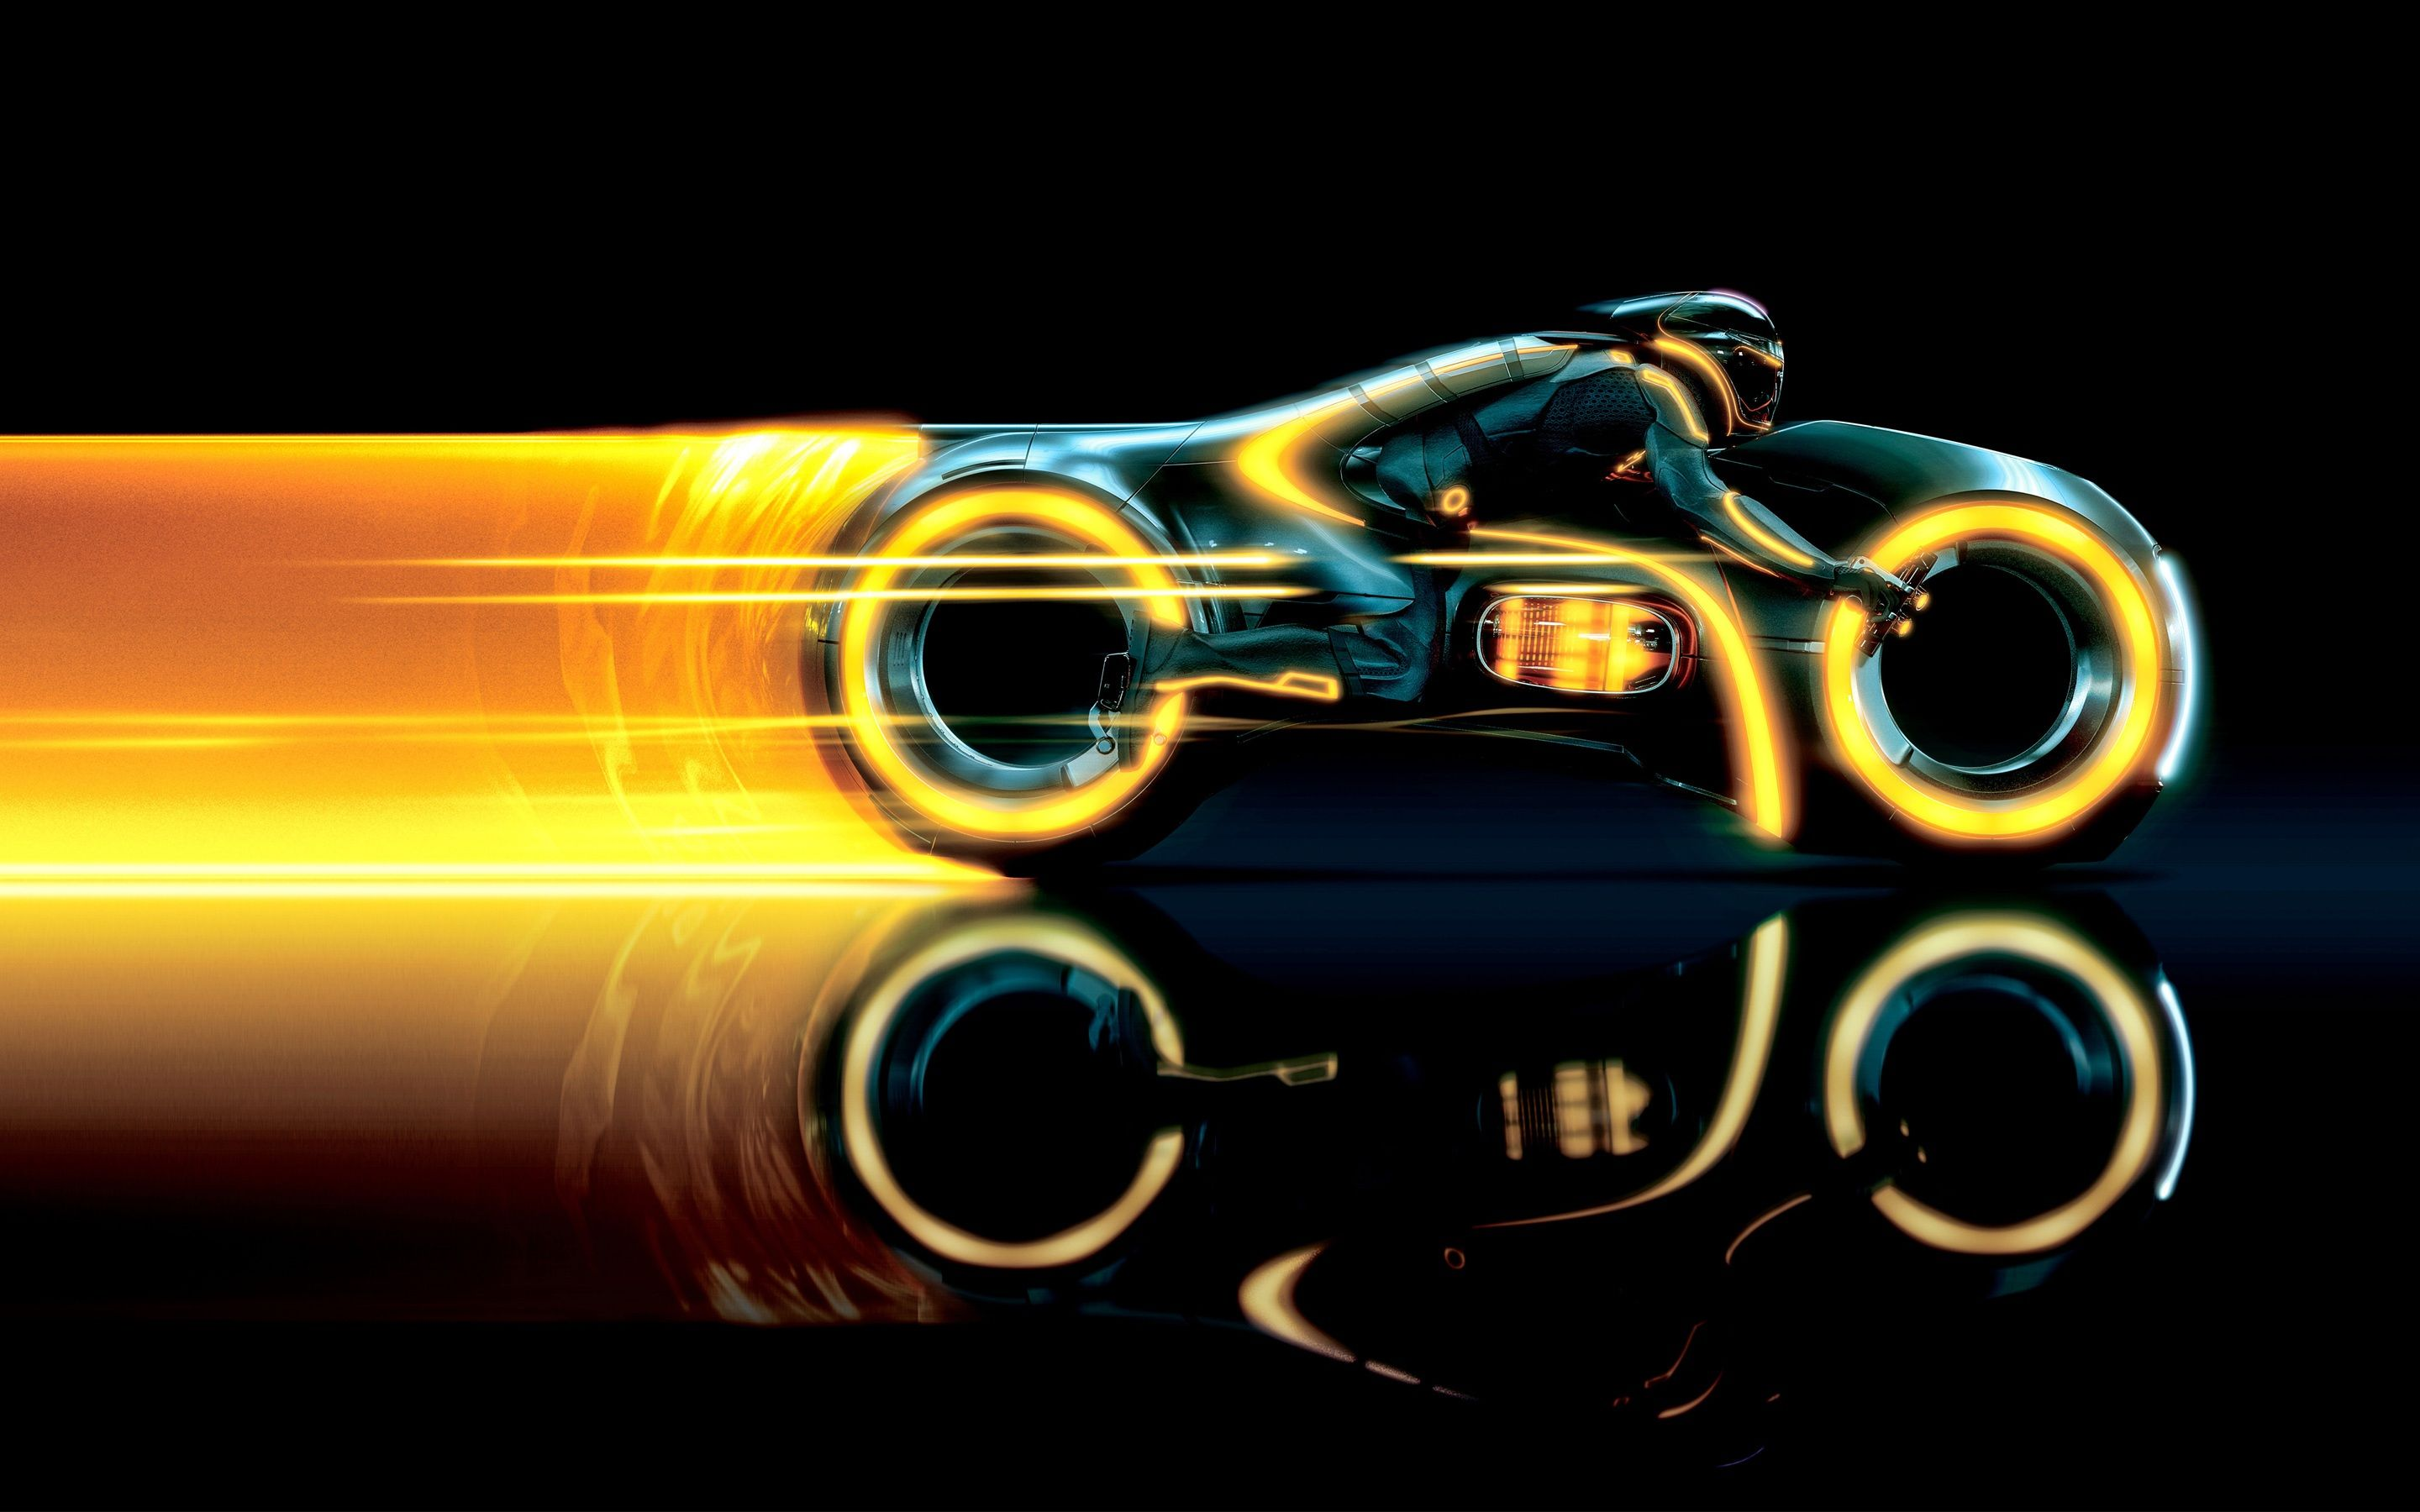 Tron Legacy Lightcycle Wallpapers Hd Wallpapers Hd Wallpapers